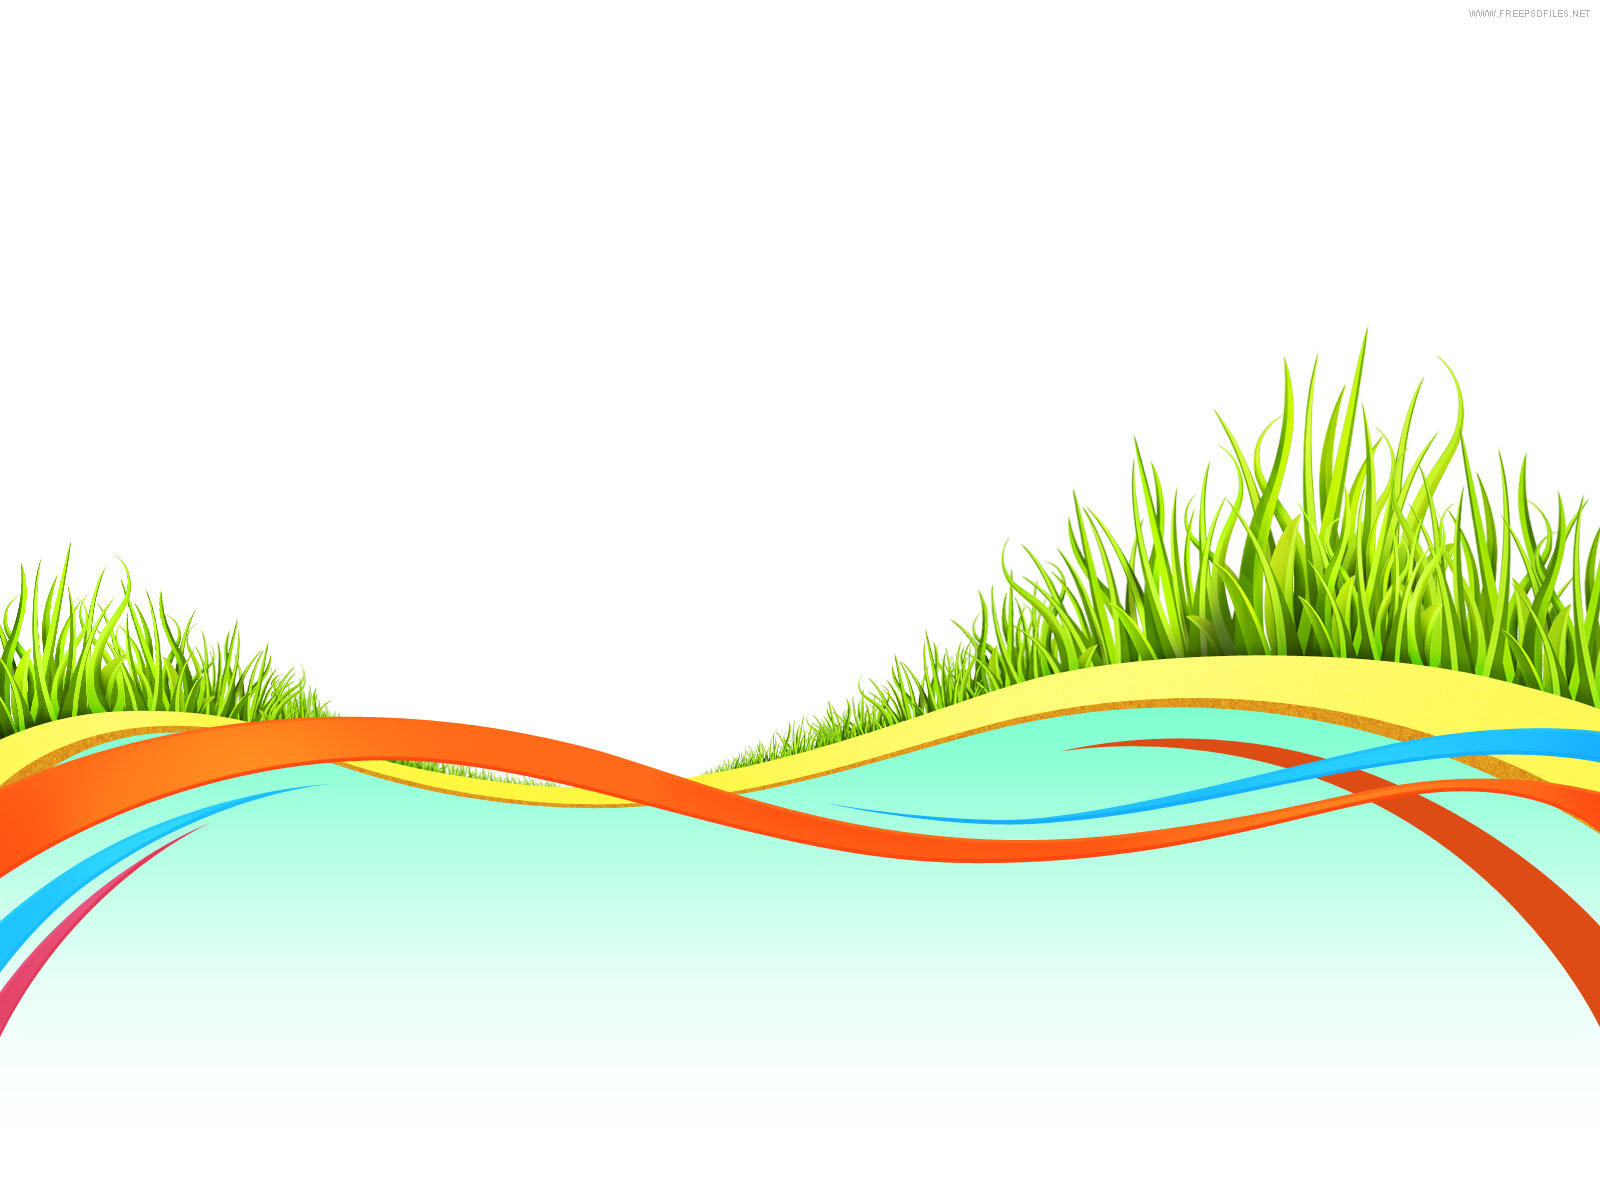 Wave backgrounds with Grass Elements PPT Backgrounds